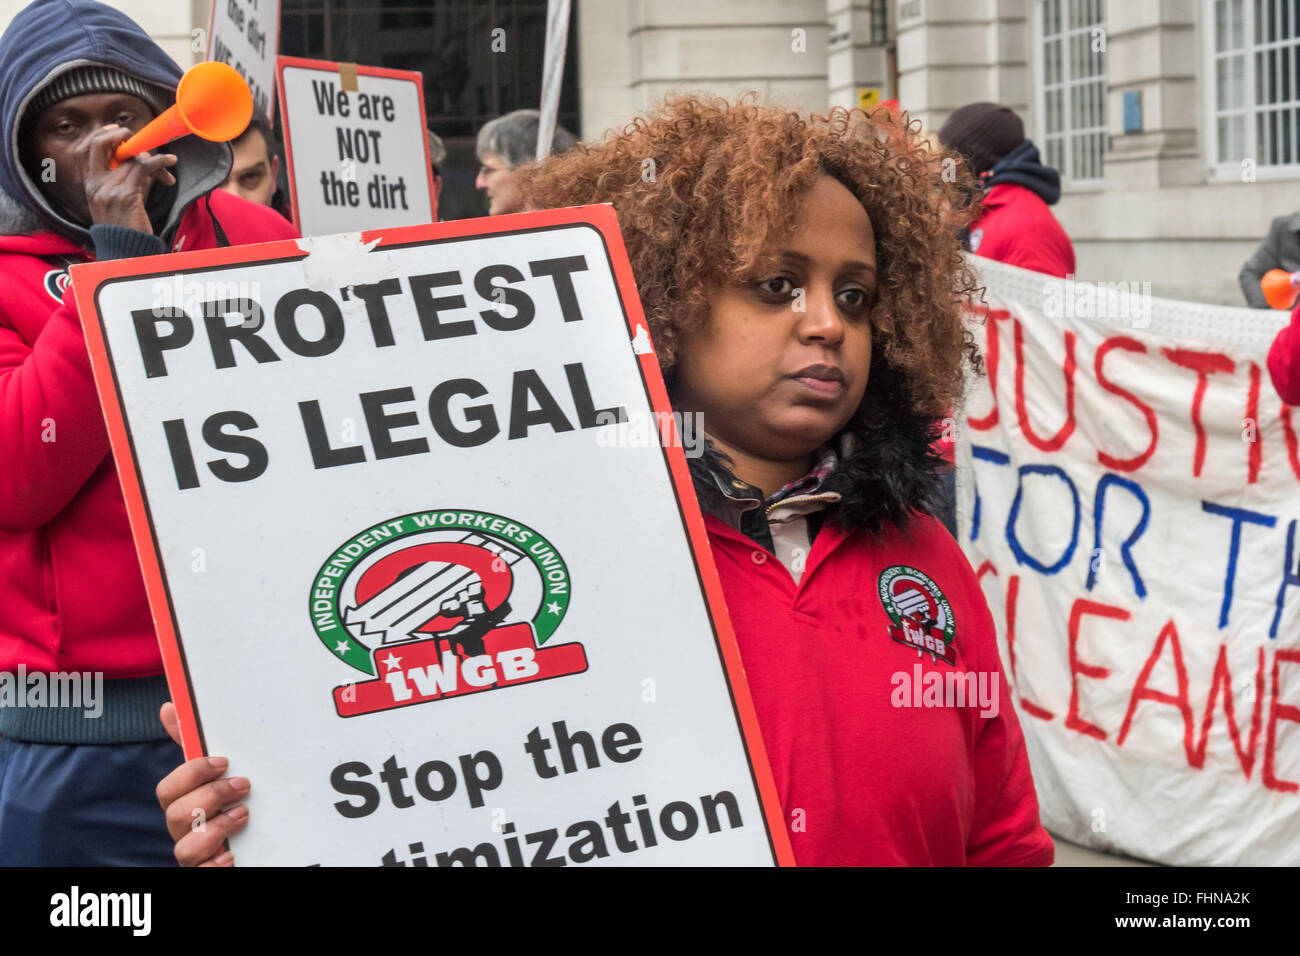 London, UK. 25th February, 2016. IWGB union rep Hanna Abebe at protest outside Bloomberg London calling for her - Stock Image